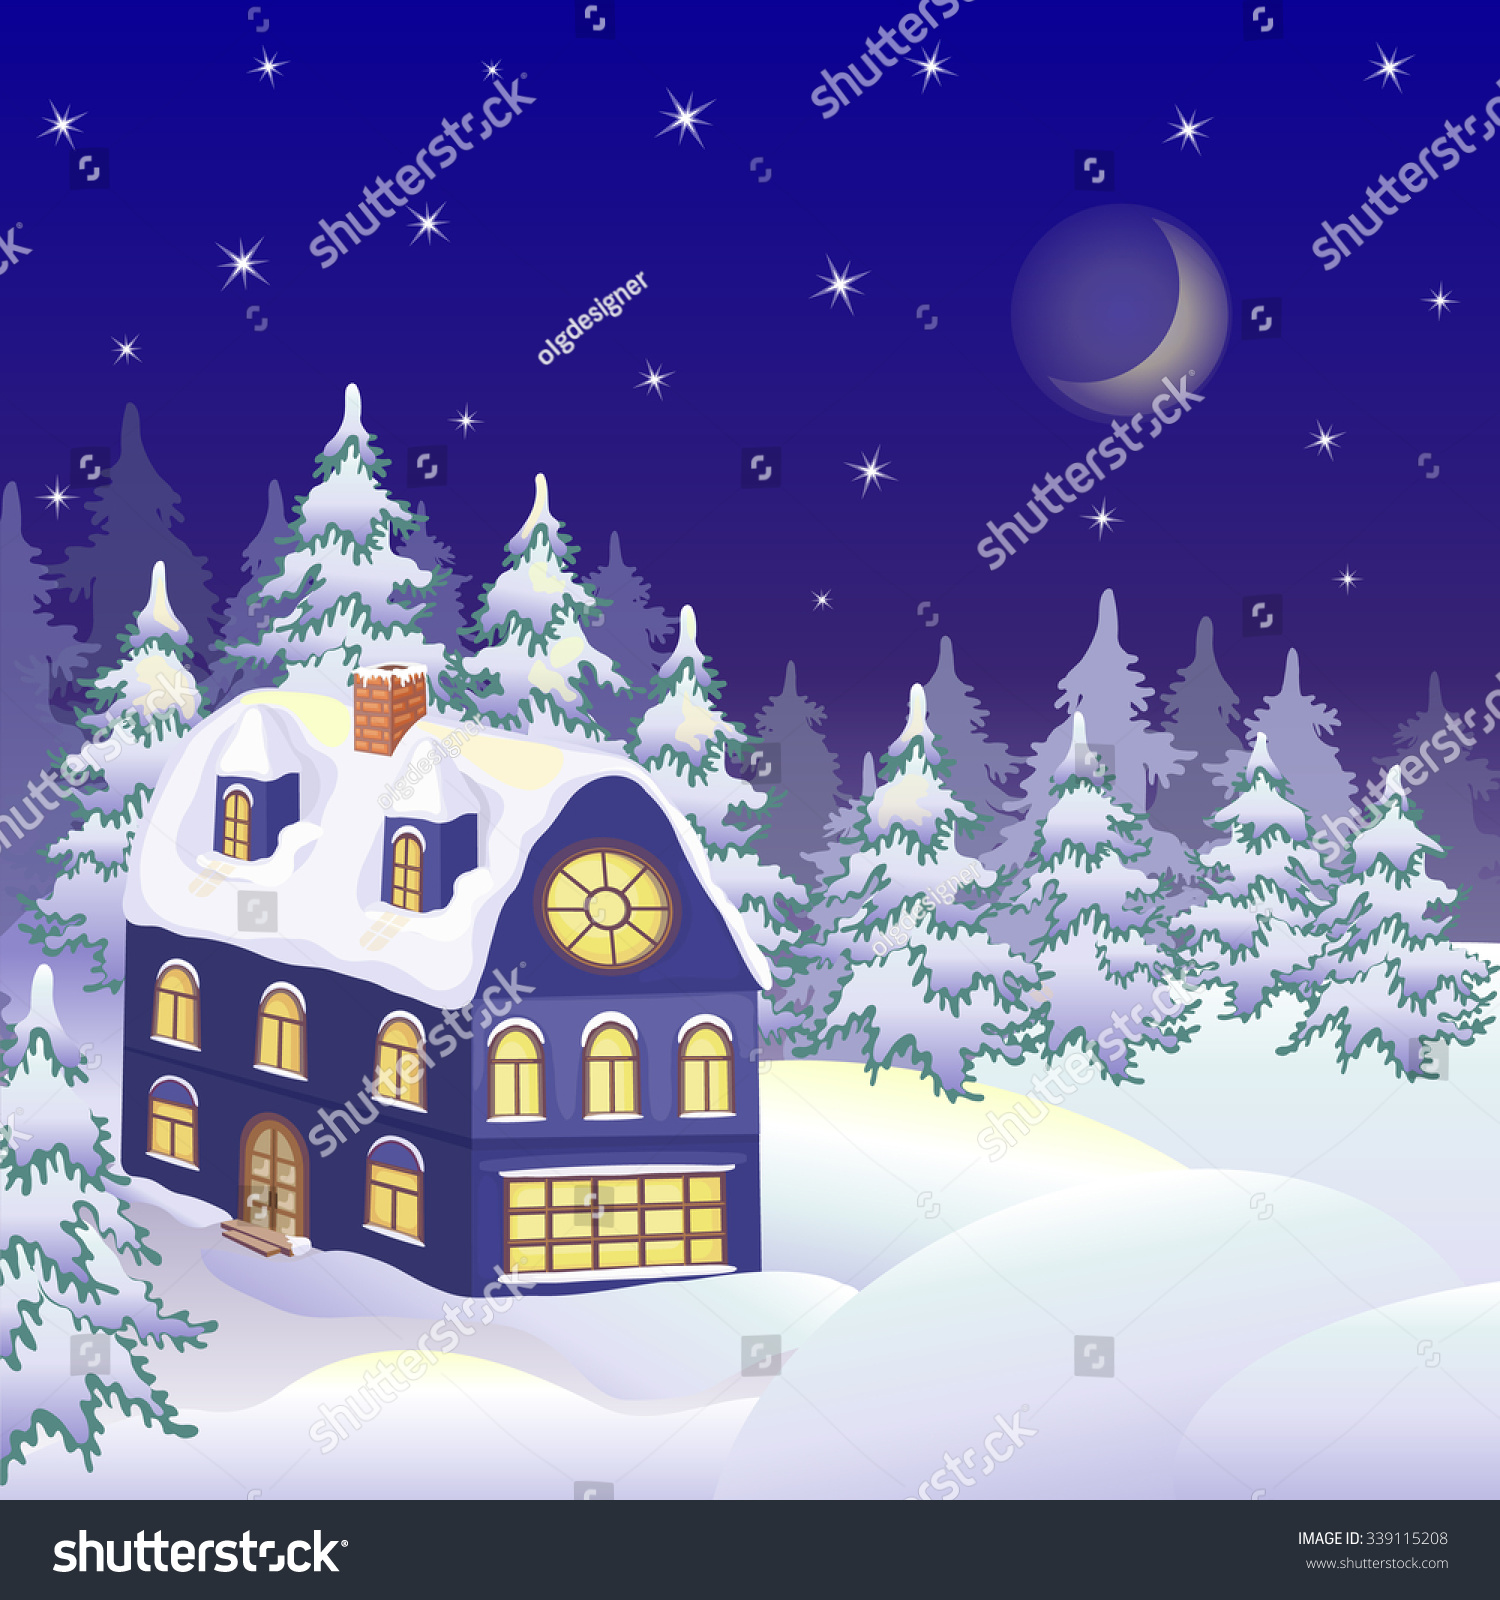 Winter Landscape With Snowy House Christmas Greeting Card Colorful